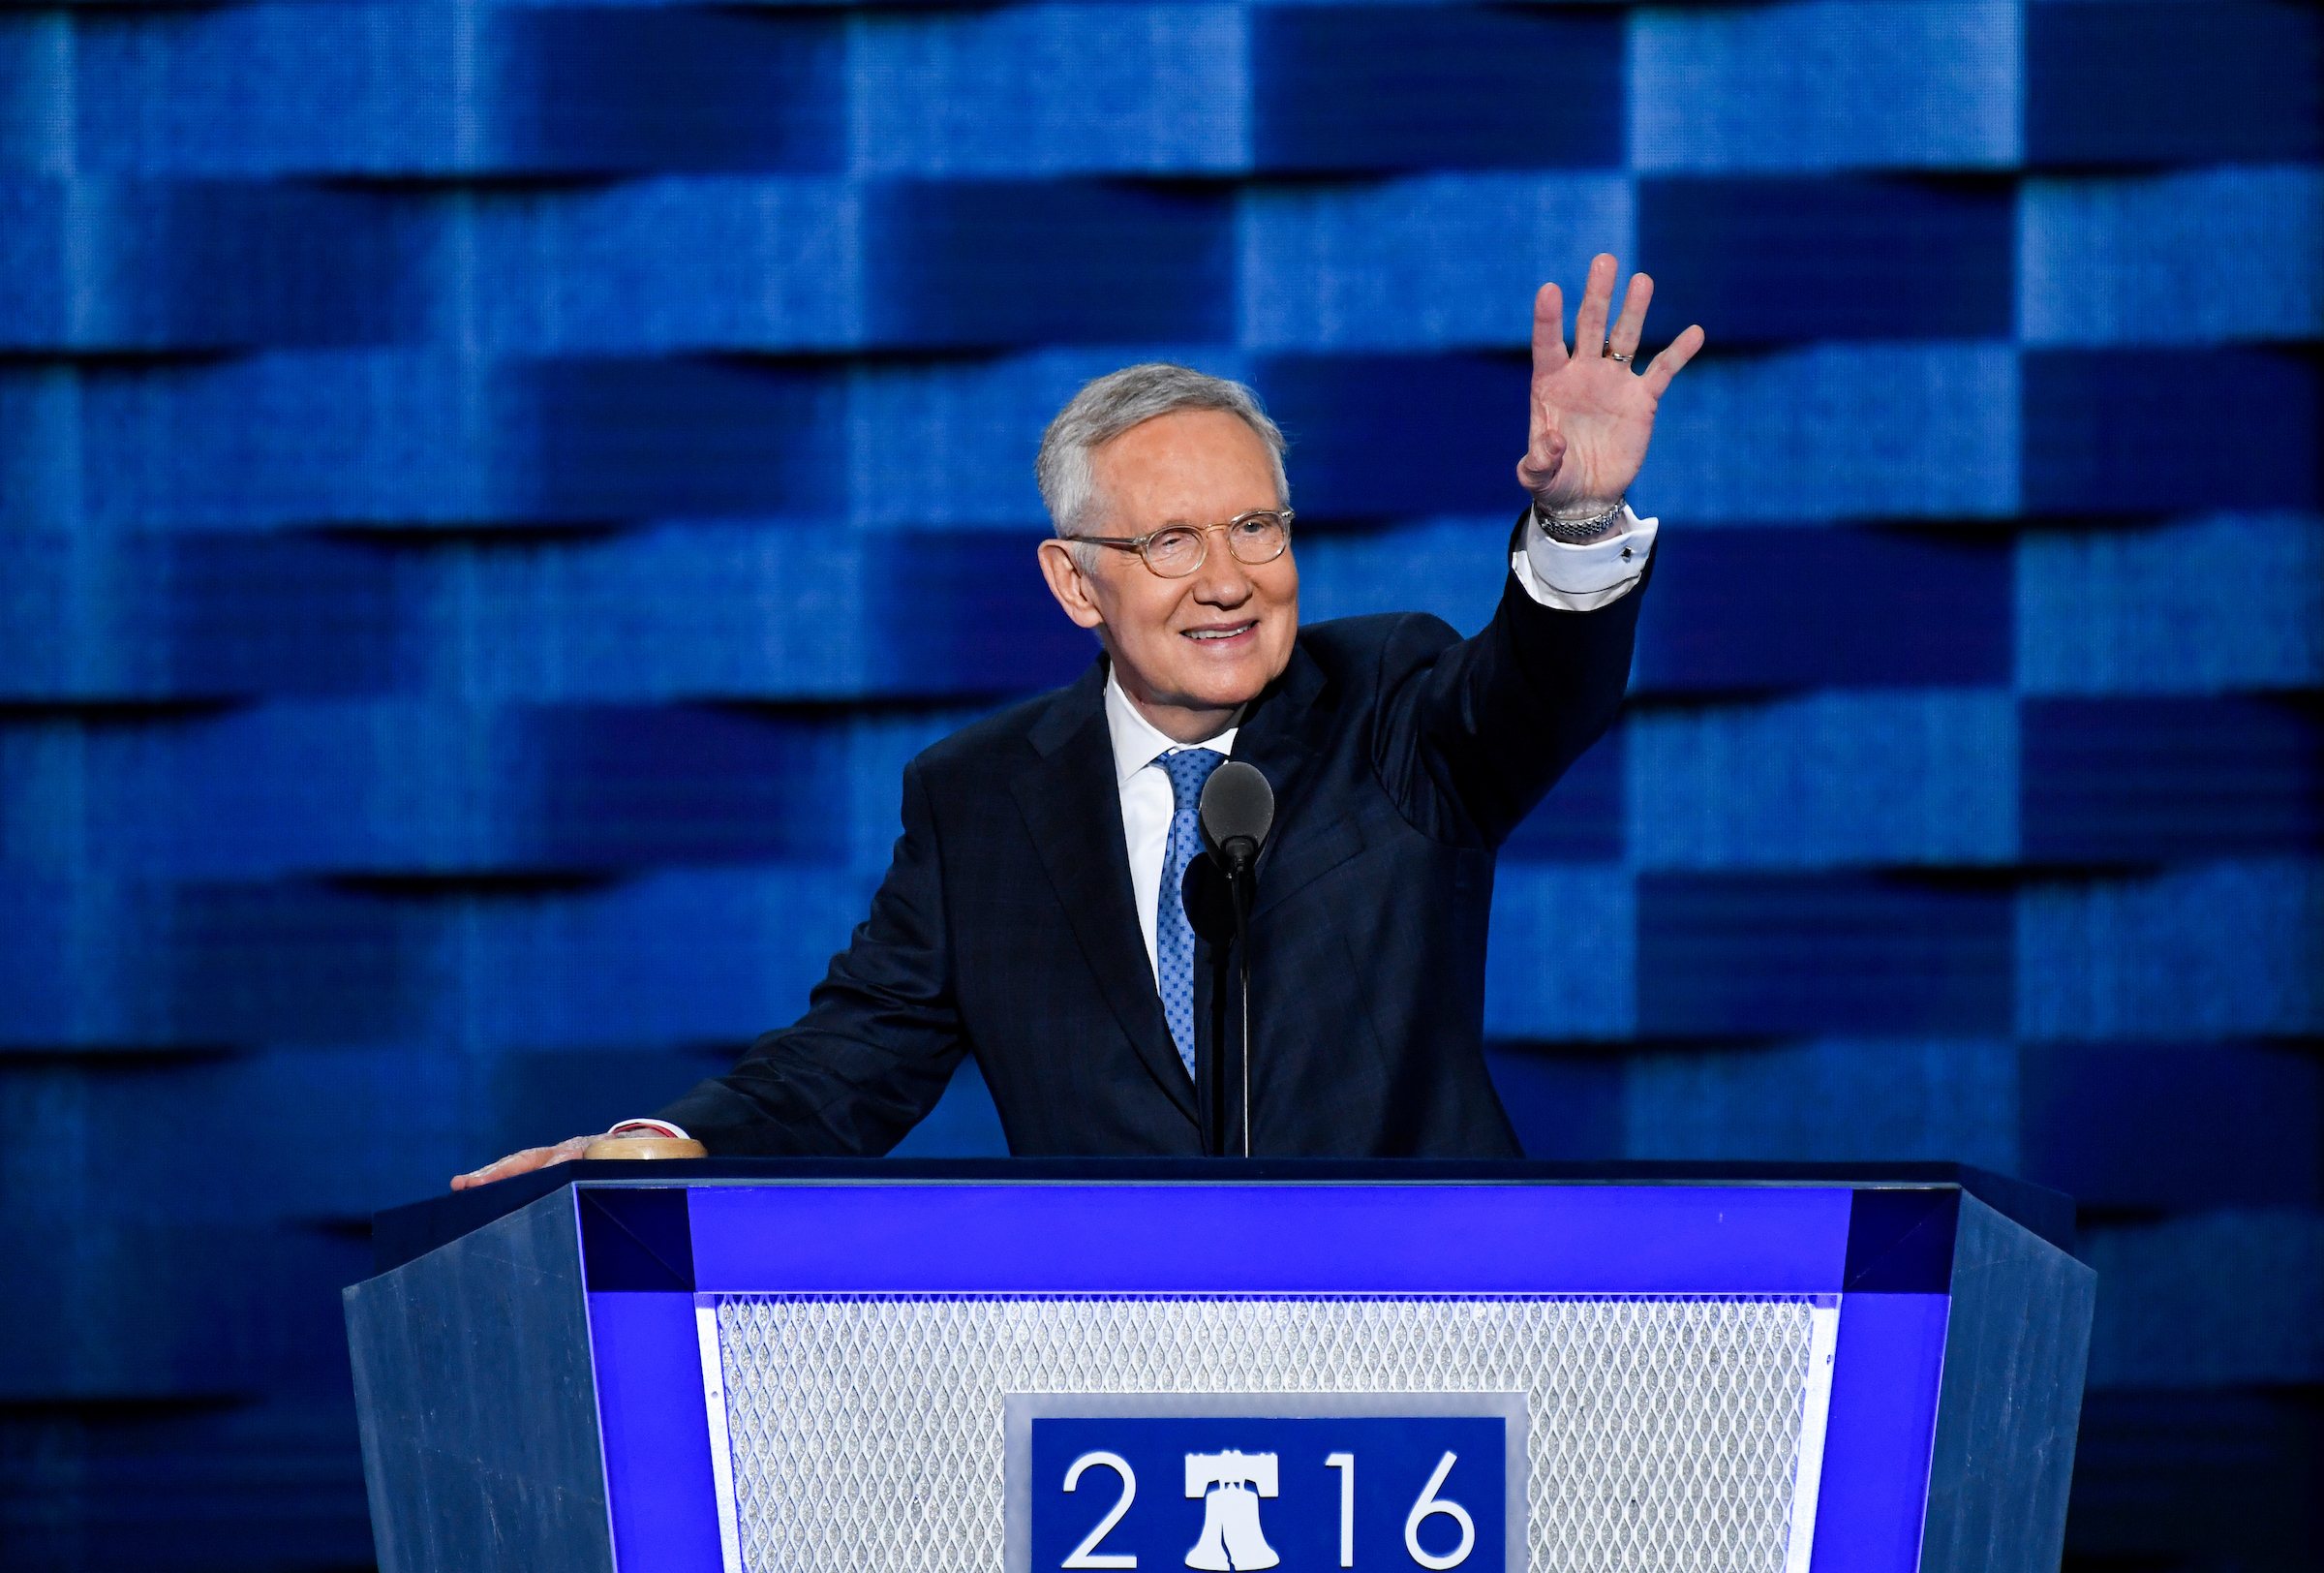 Senate Minority Leader Harry Reid speaks at the Democratic National Convention on Wednesday. (Bill Clark/CQ Roll Call)